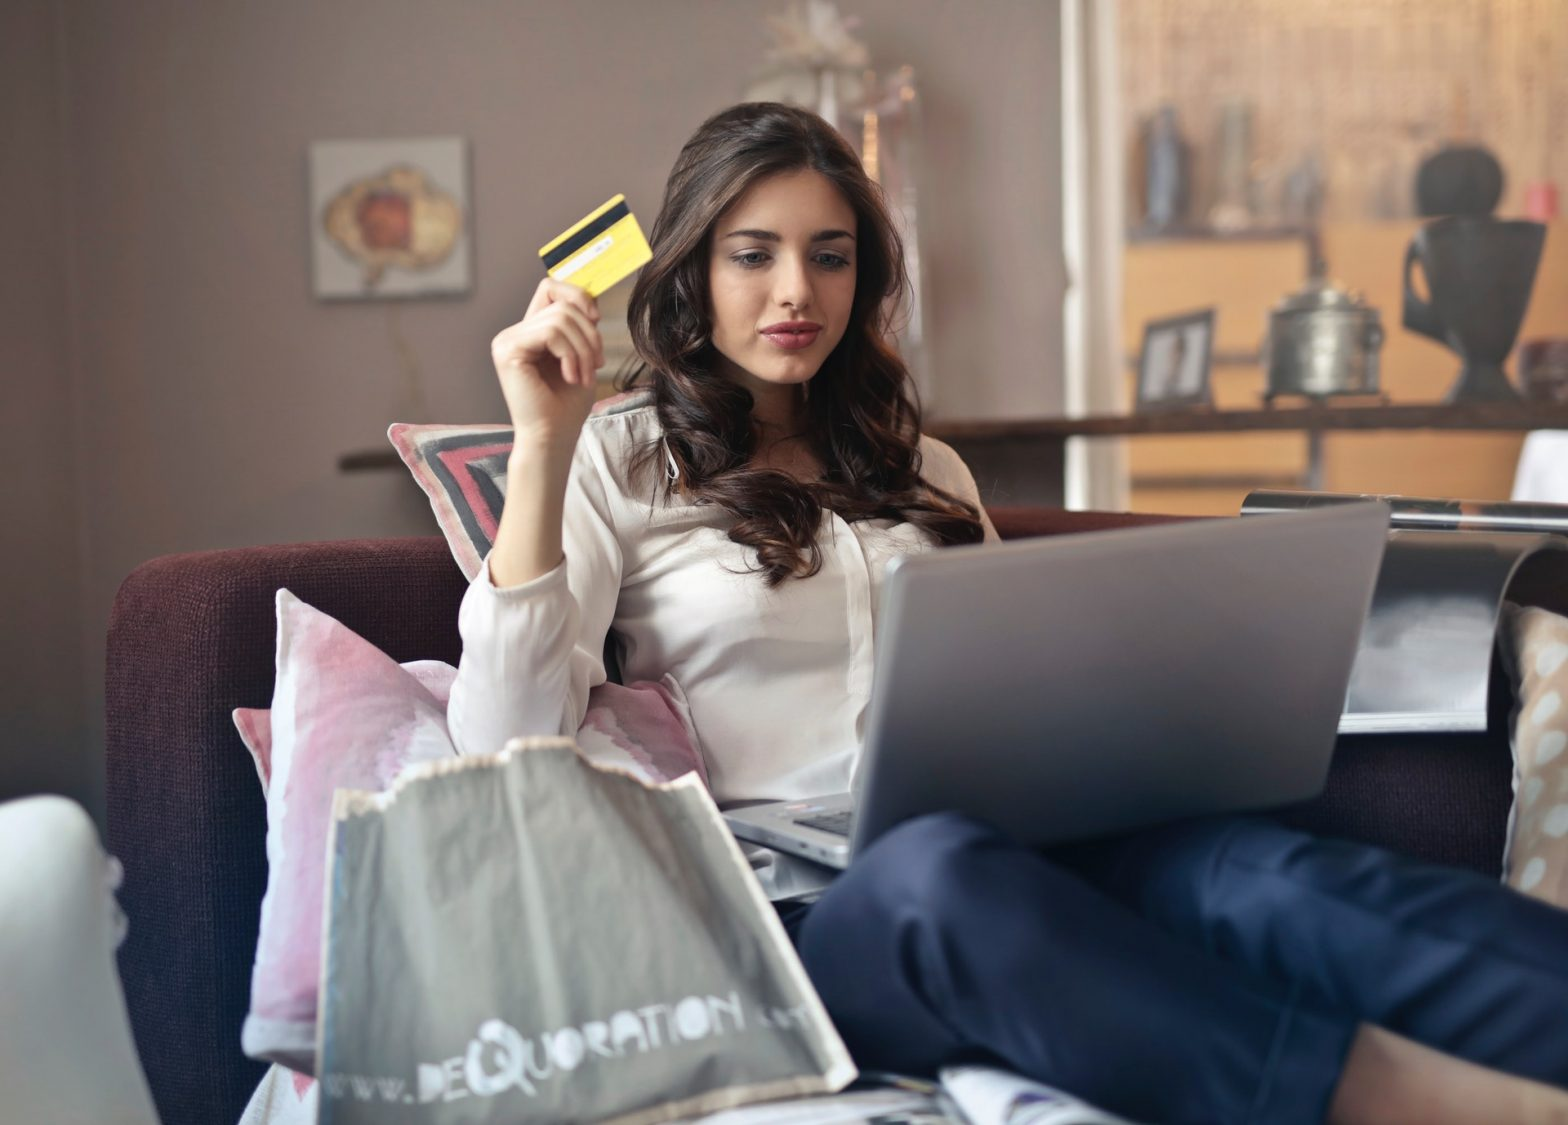 How to apply for a personal loan with bad credit?